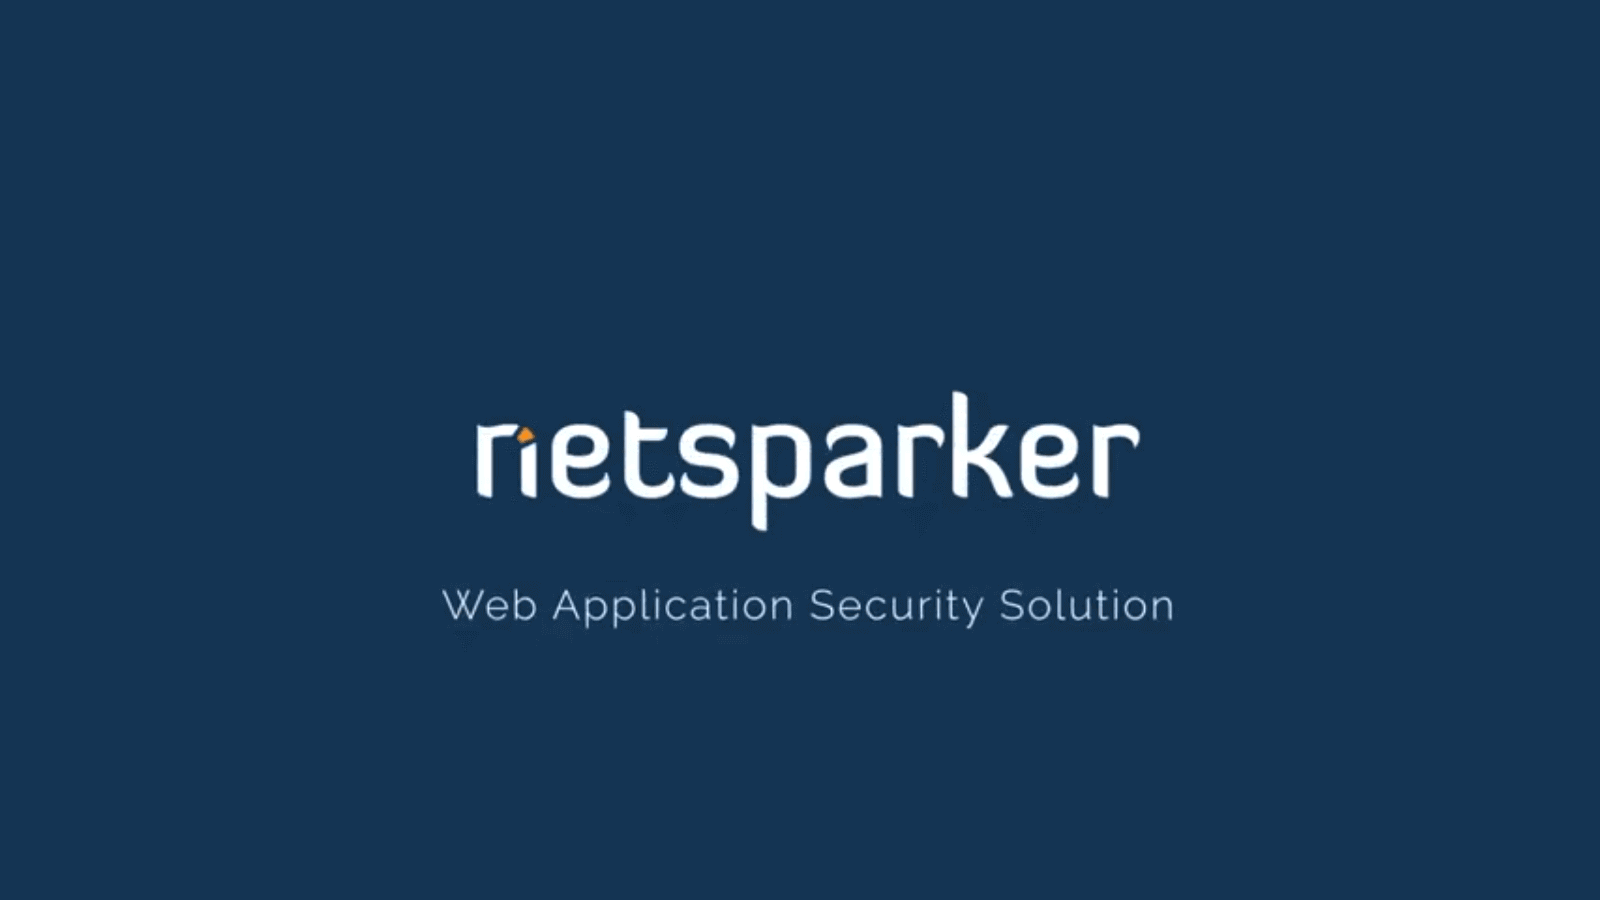 Digit Labs Web Application Security Solution - Netsparker Enterprise